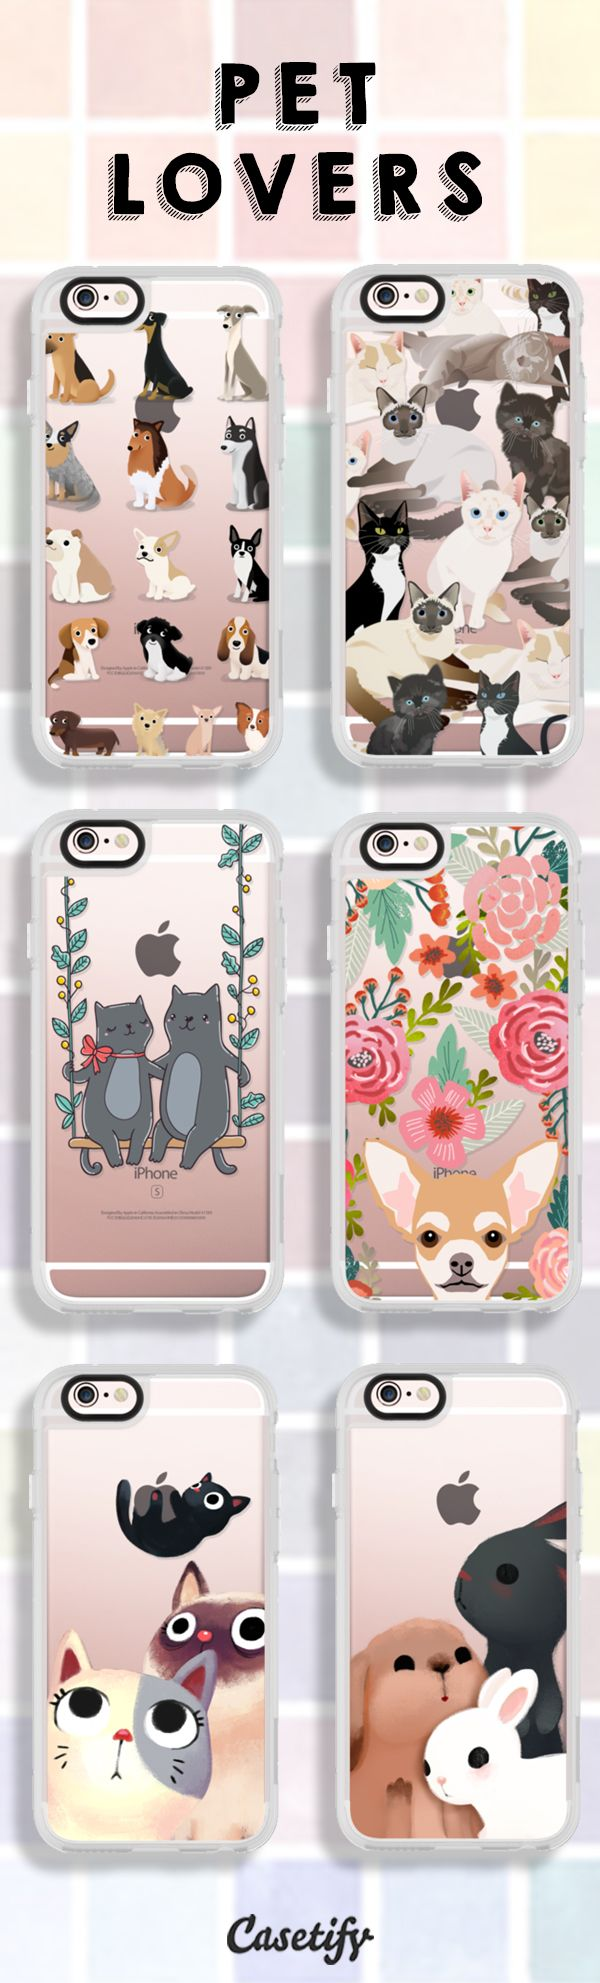 Bunnies!! - https://www.casetify.com/artworks/upHR4W8QbS